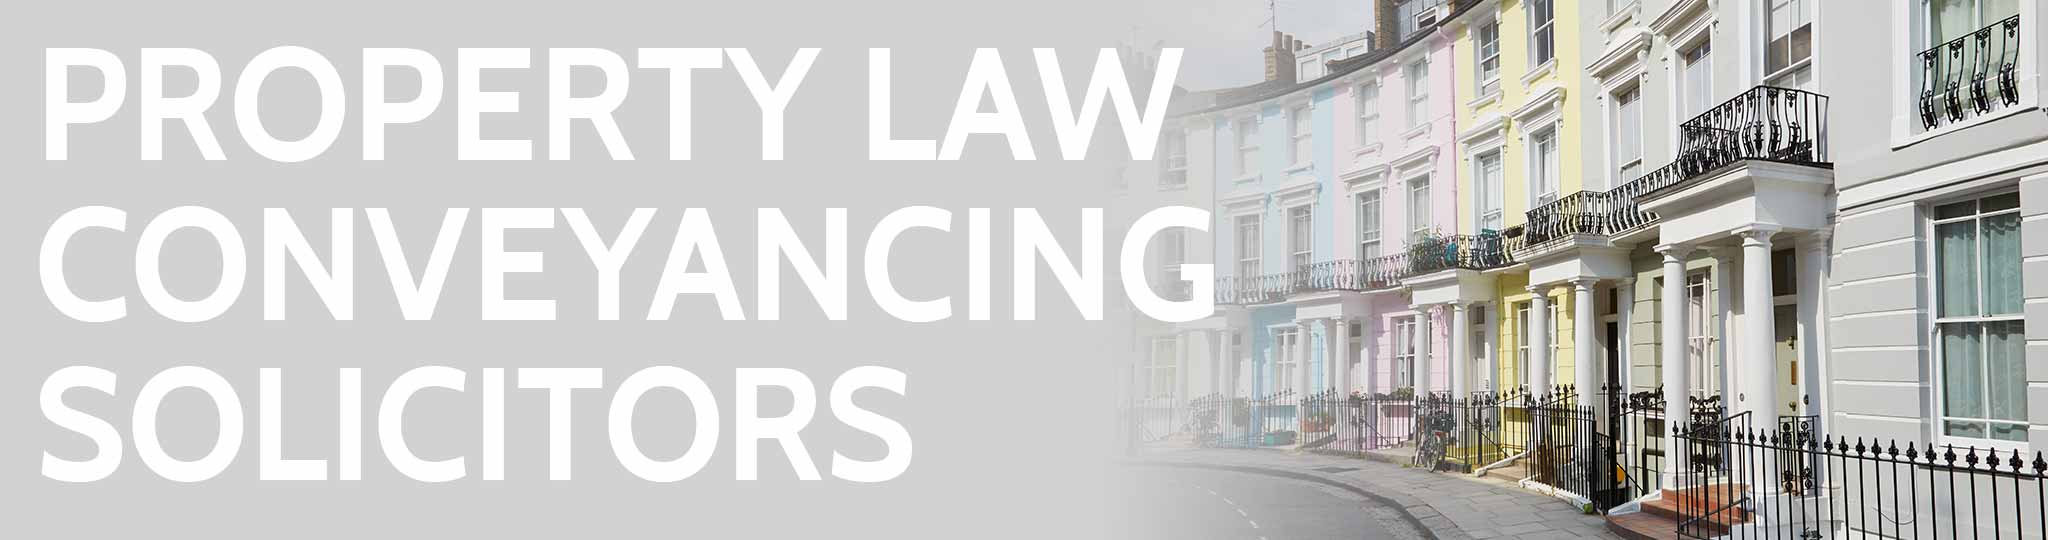 Property law and conveyancing from Bishopsgate Law solicitors